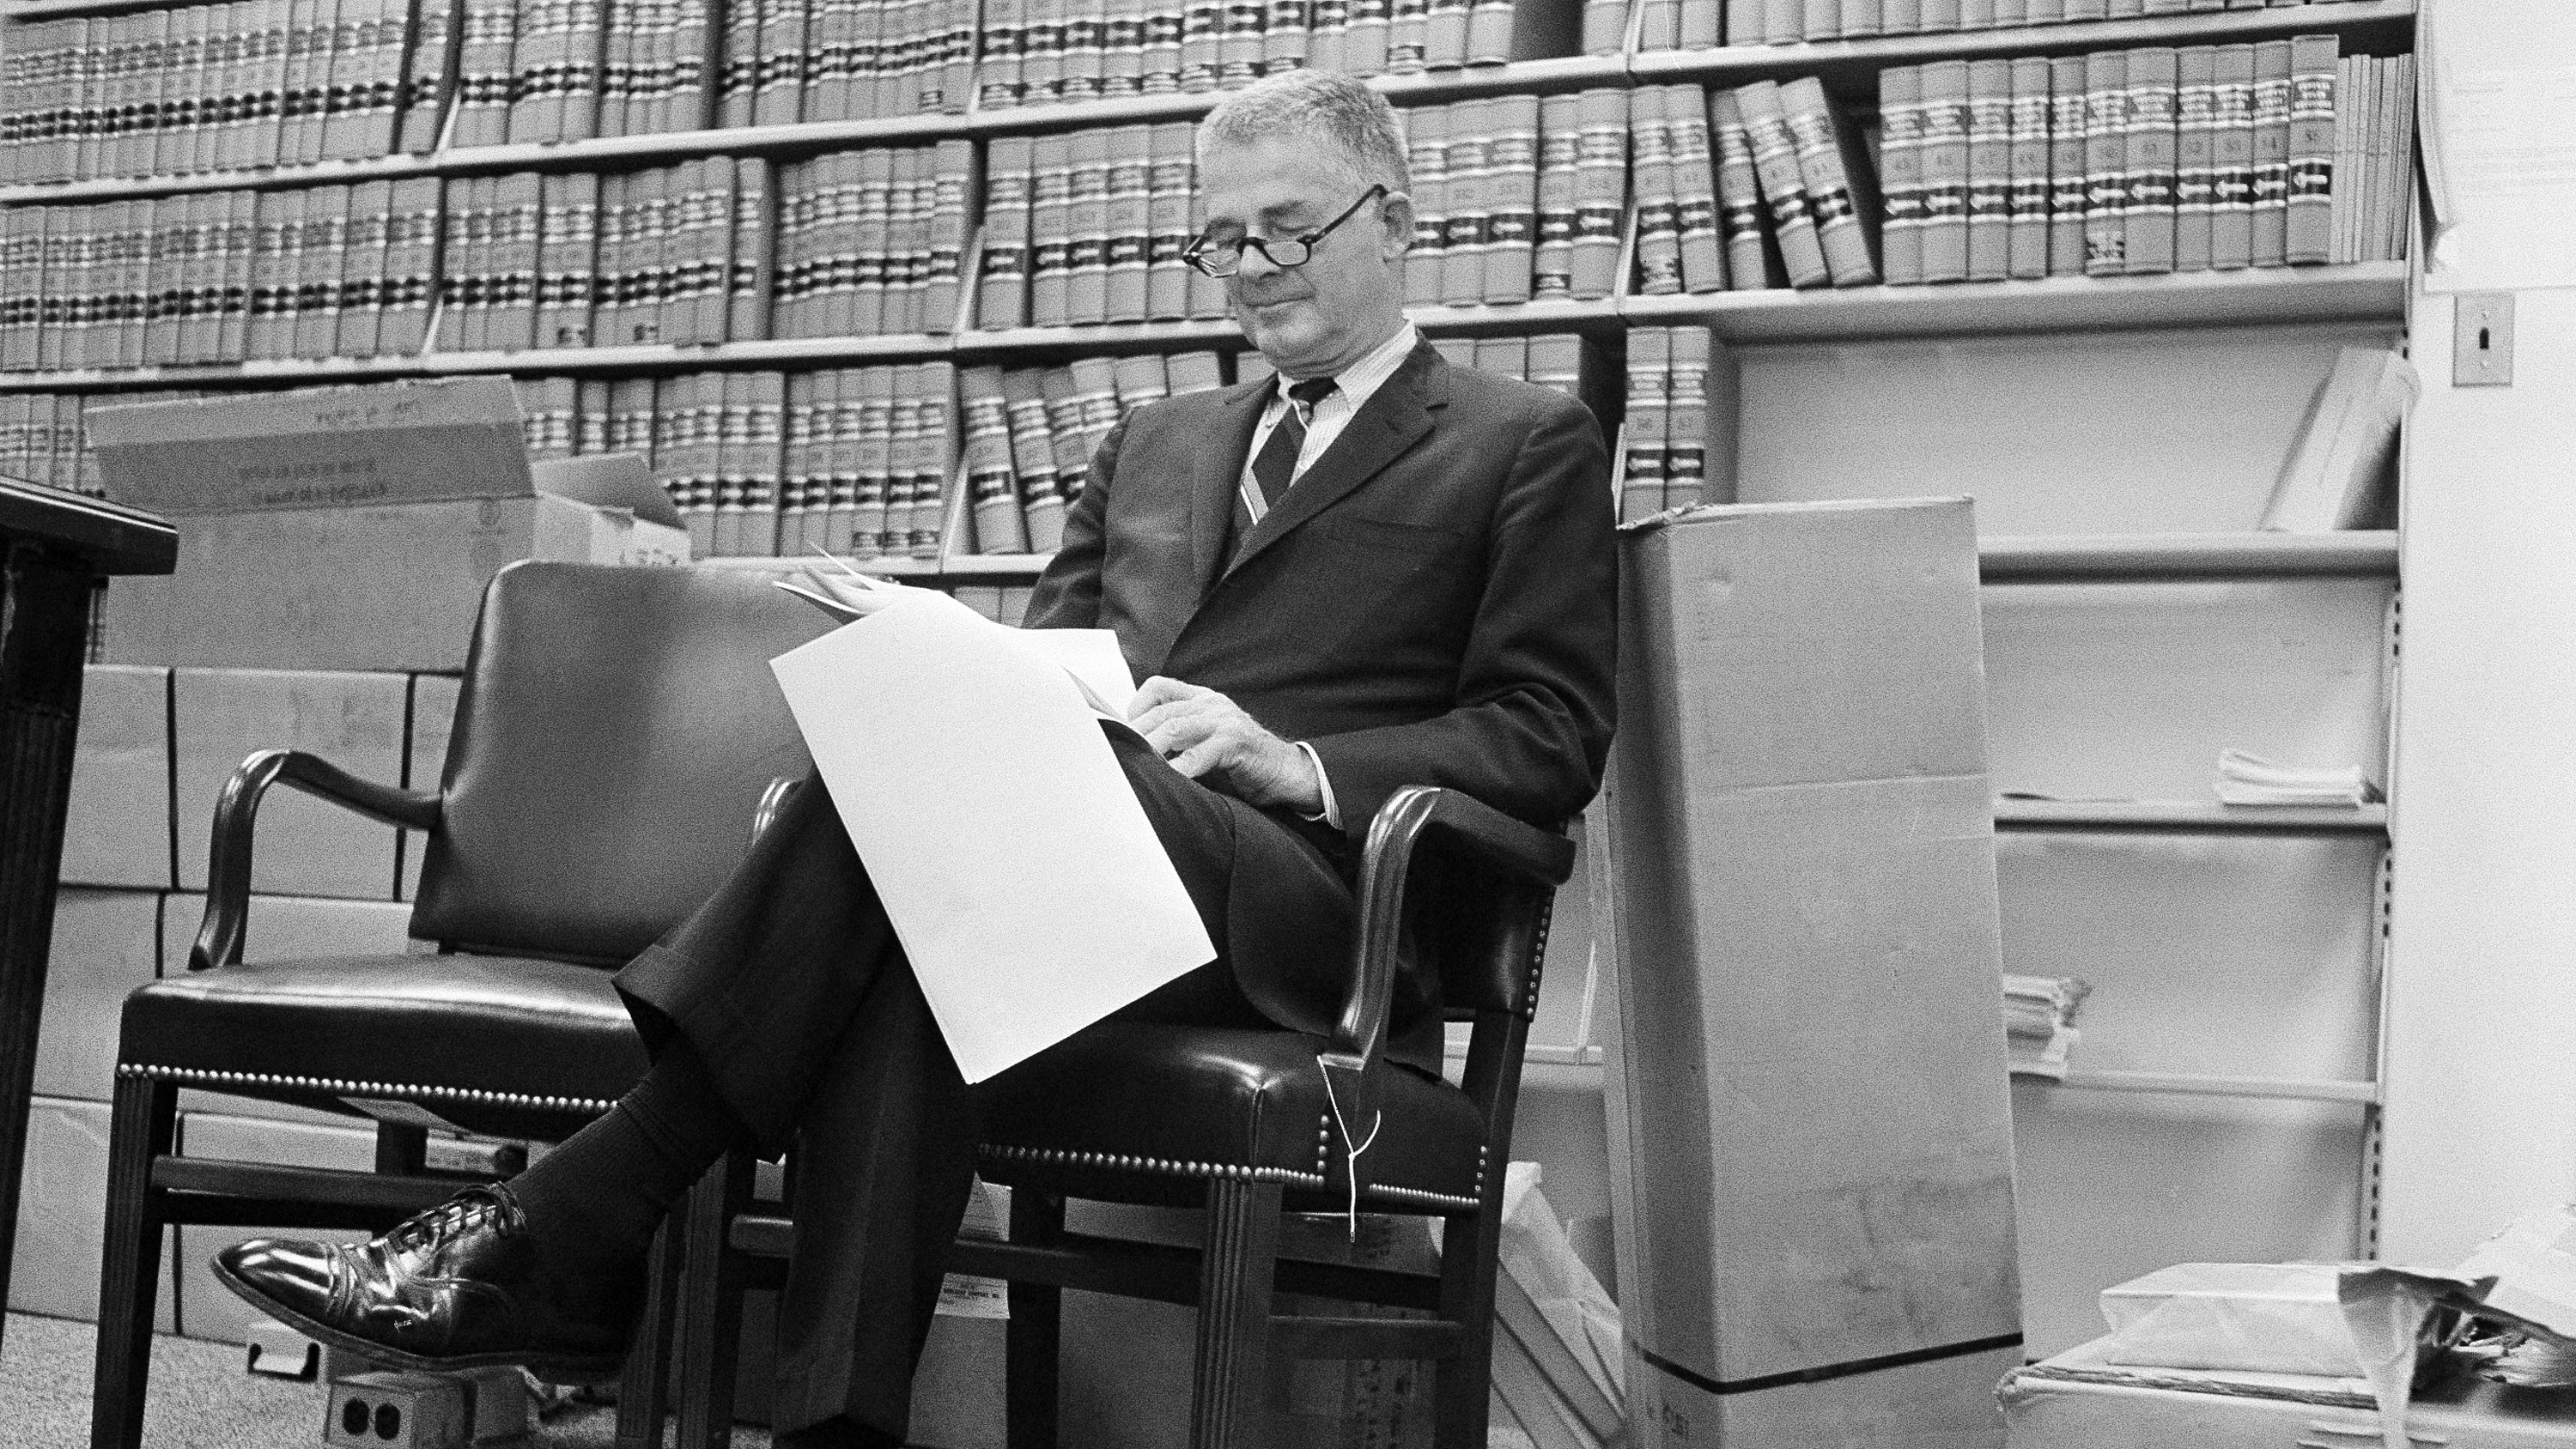 Special Watergate prosecutor Archibald Cox sits in his Washington office as he reads U.S. District Judge John Sirica's order that President Nixon produce tapes of the White House conversations on Watergate for private judicial inspection, Aug. 29, 1973. ()